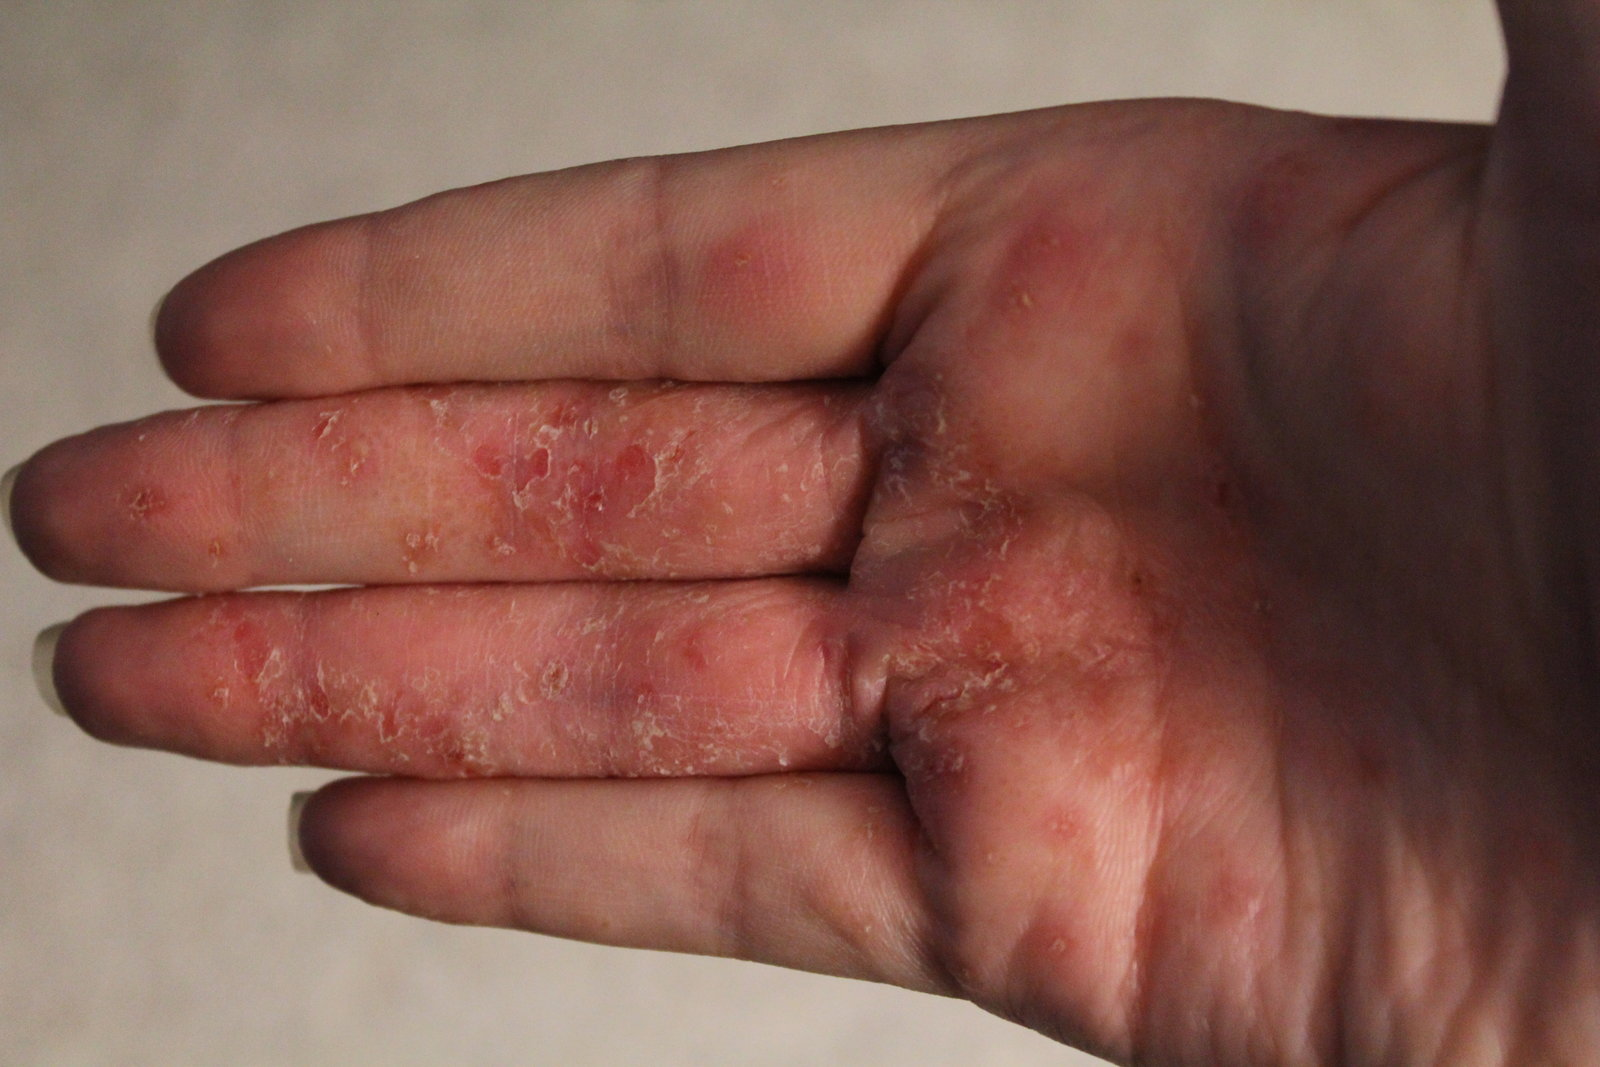 Pompholyx : National Eczema Society